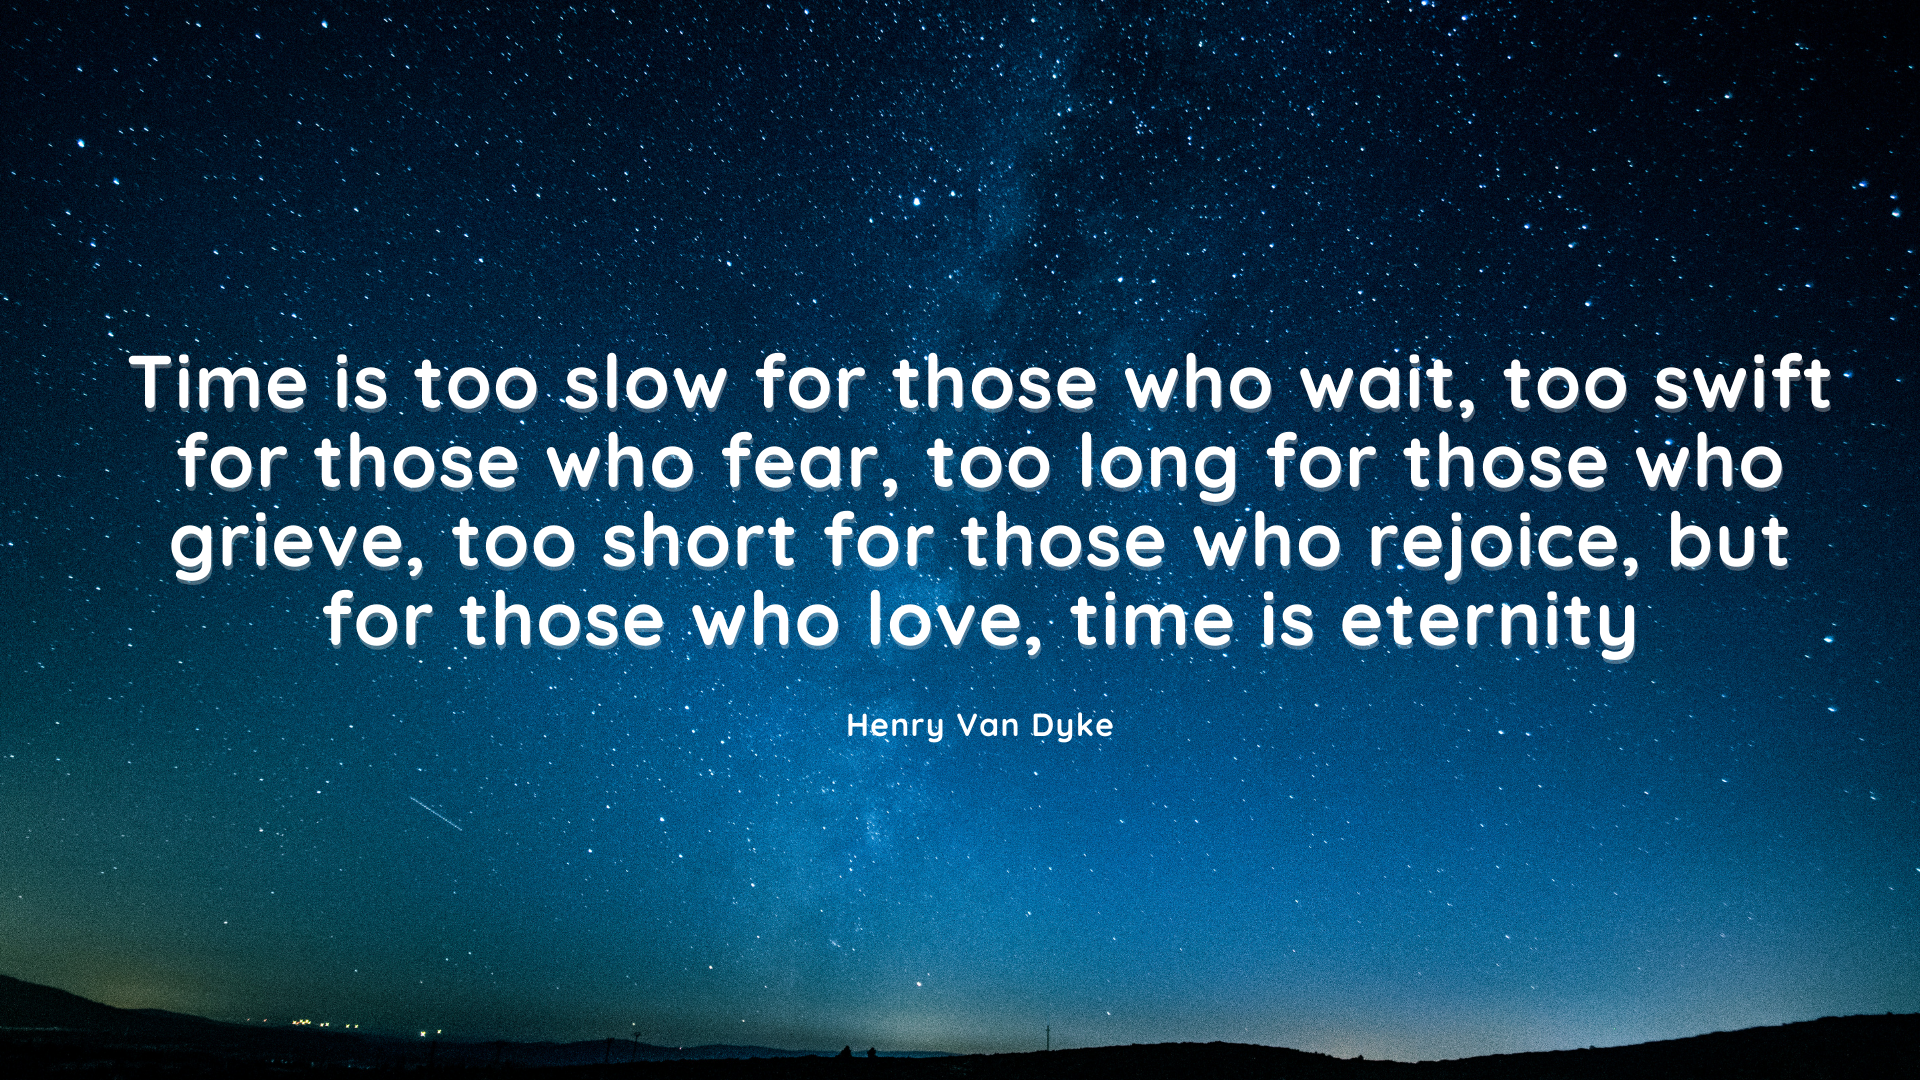 Time is too slow for those who wait, too swift for those who fear, too long for those who grieve, too short for those who rejoice, but for those who love, time is eternity. – Henry Van Dyke[1920×1080][OC]